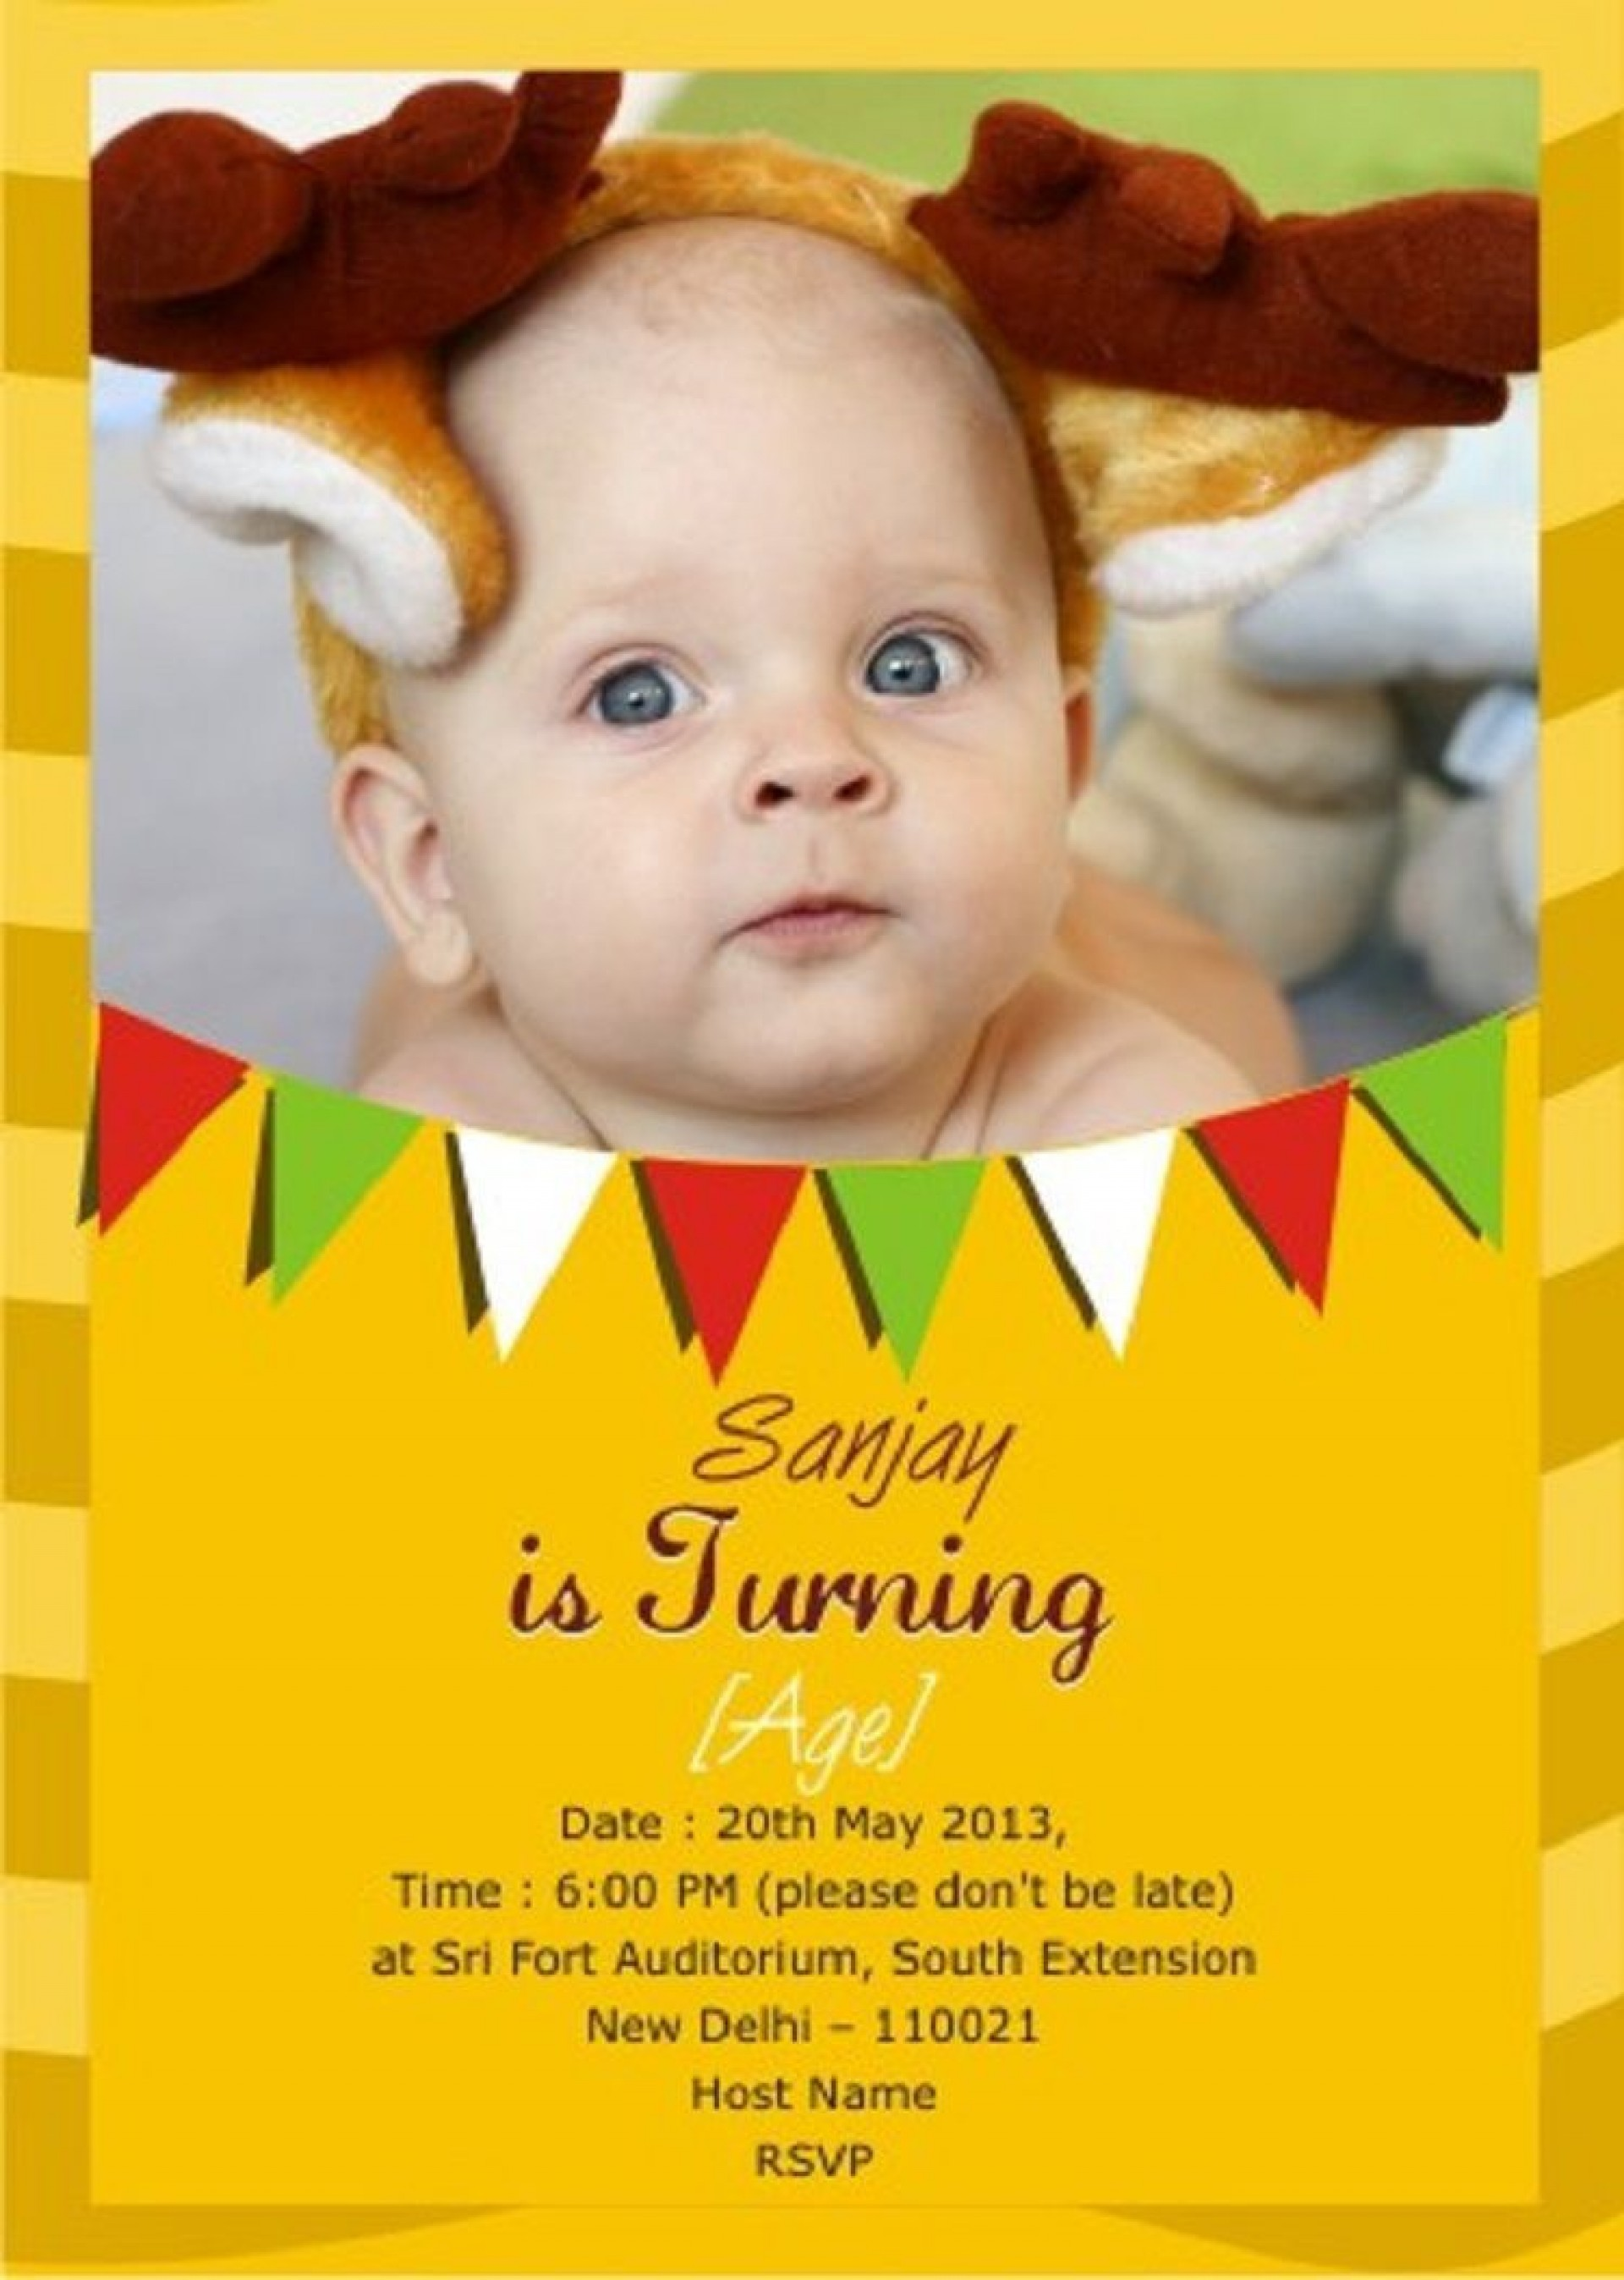 005 Staggering Free Online Birthday Invitation Card Maker With Name And Photo Design 1920